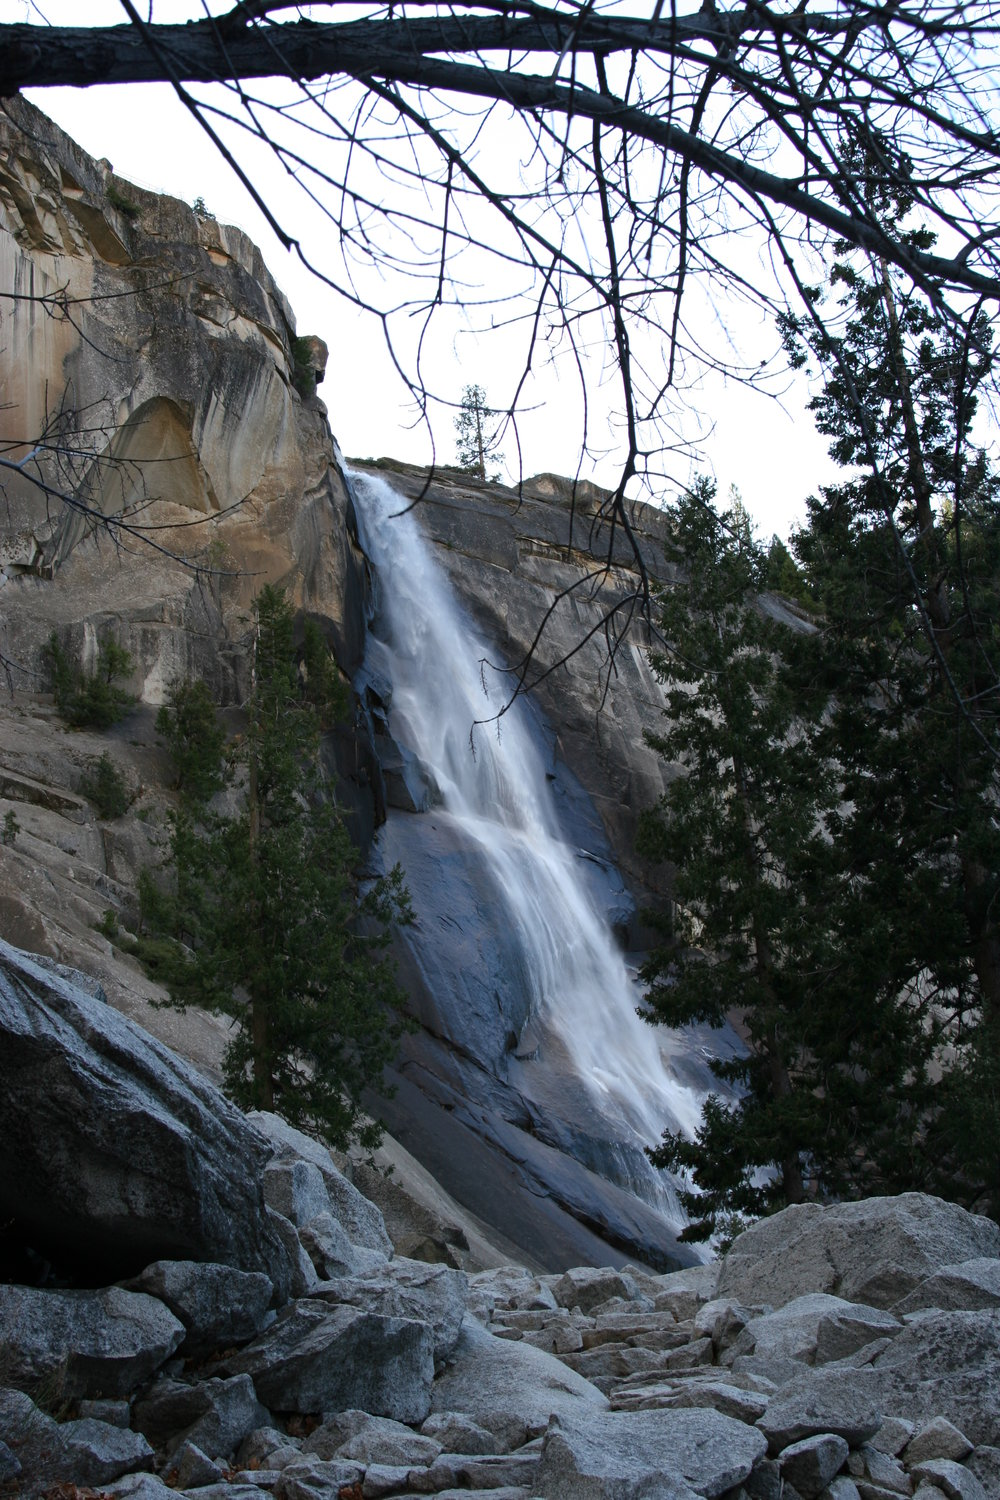 After Vernal Falls, the route then passes Nevada Falls.